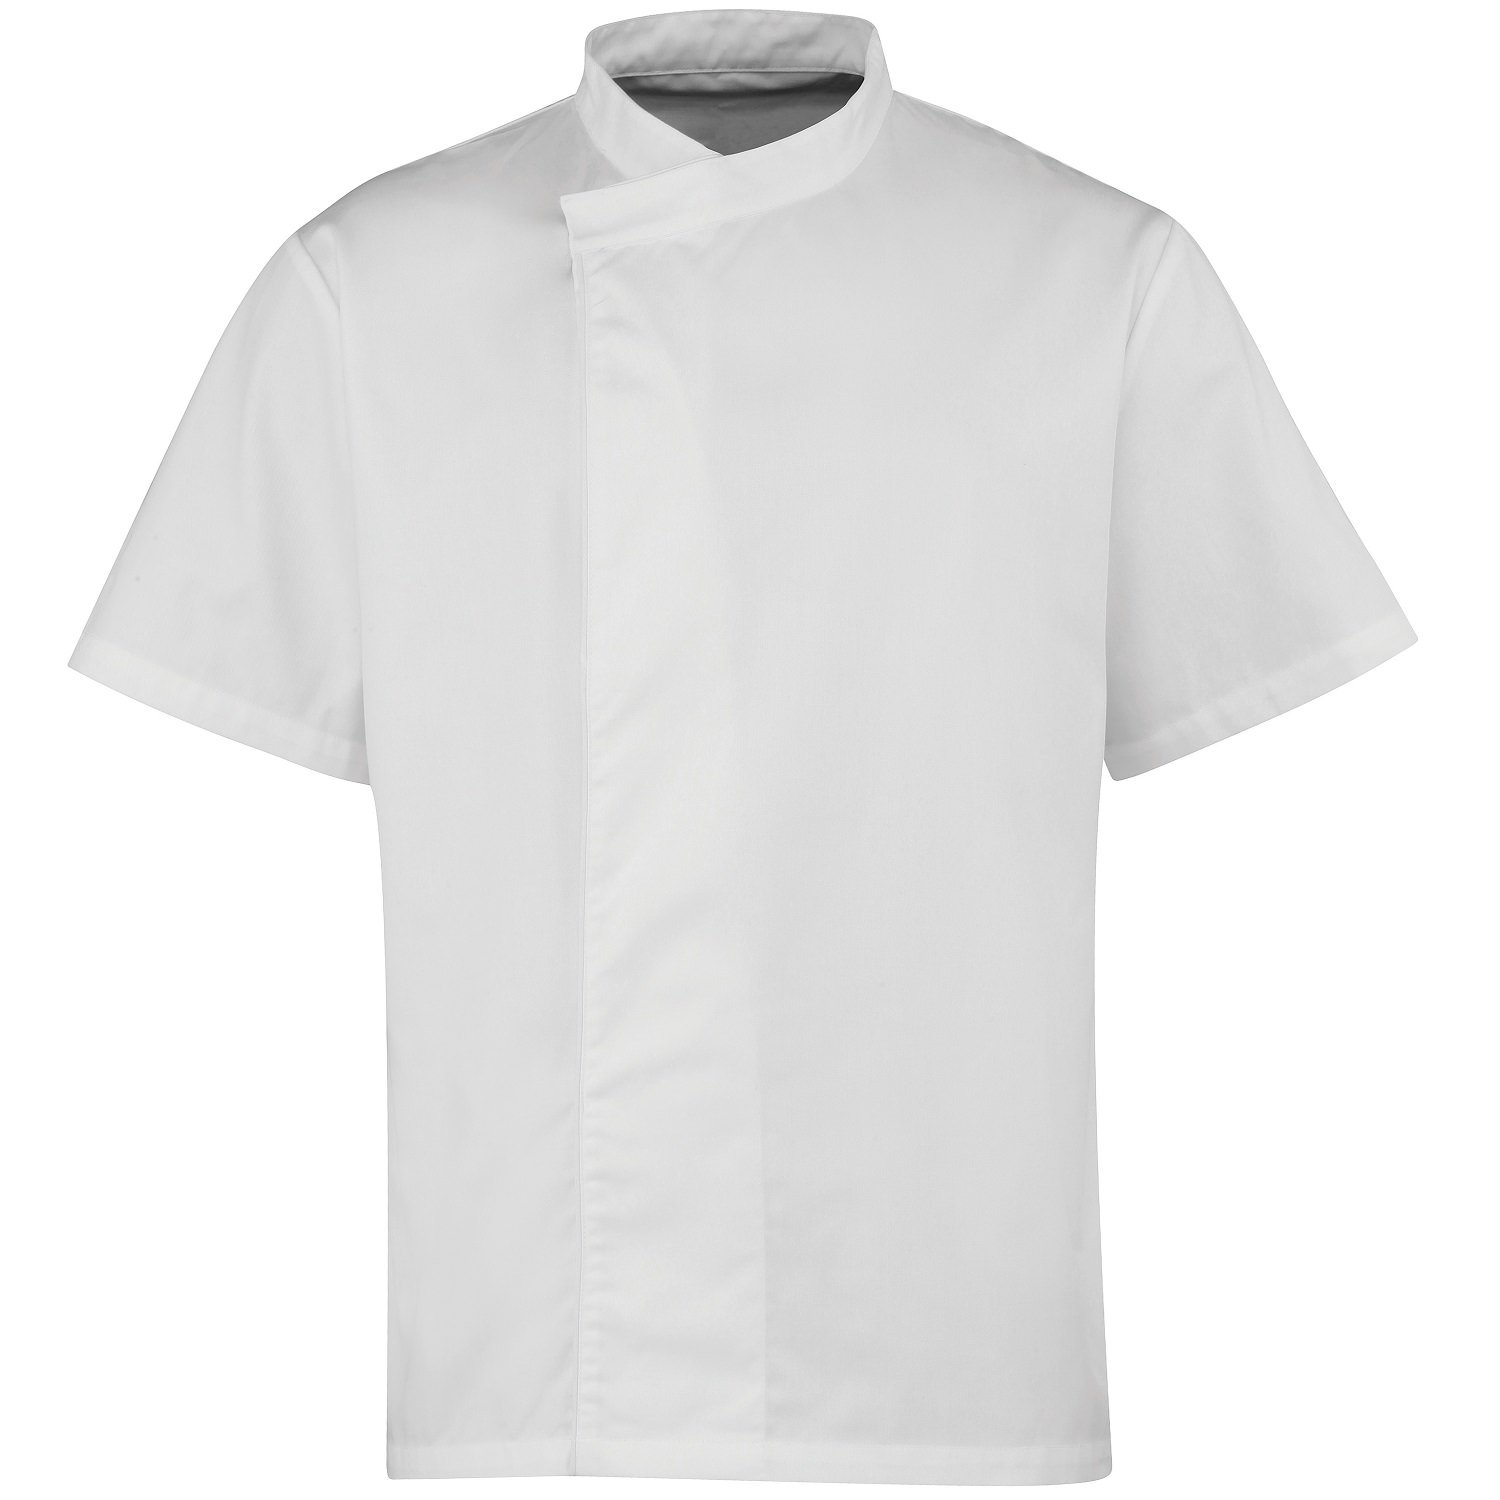 Premier Culinary Pull-On Short Sleeve Chef's Tunic - Size XS-2XL